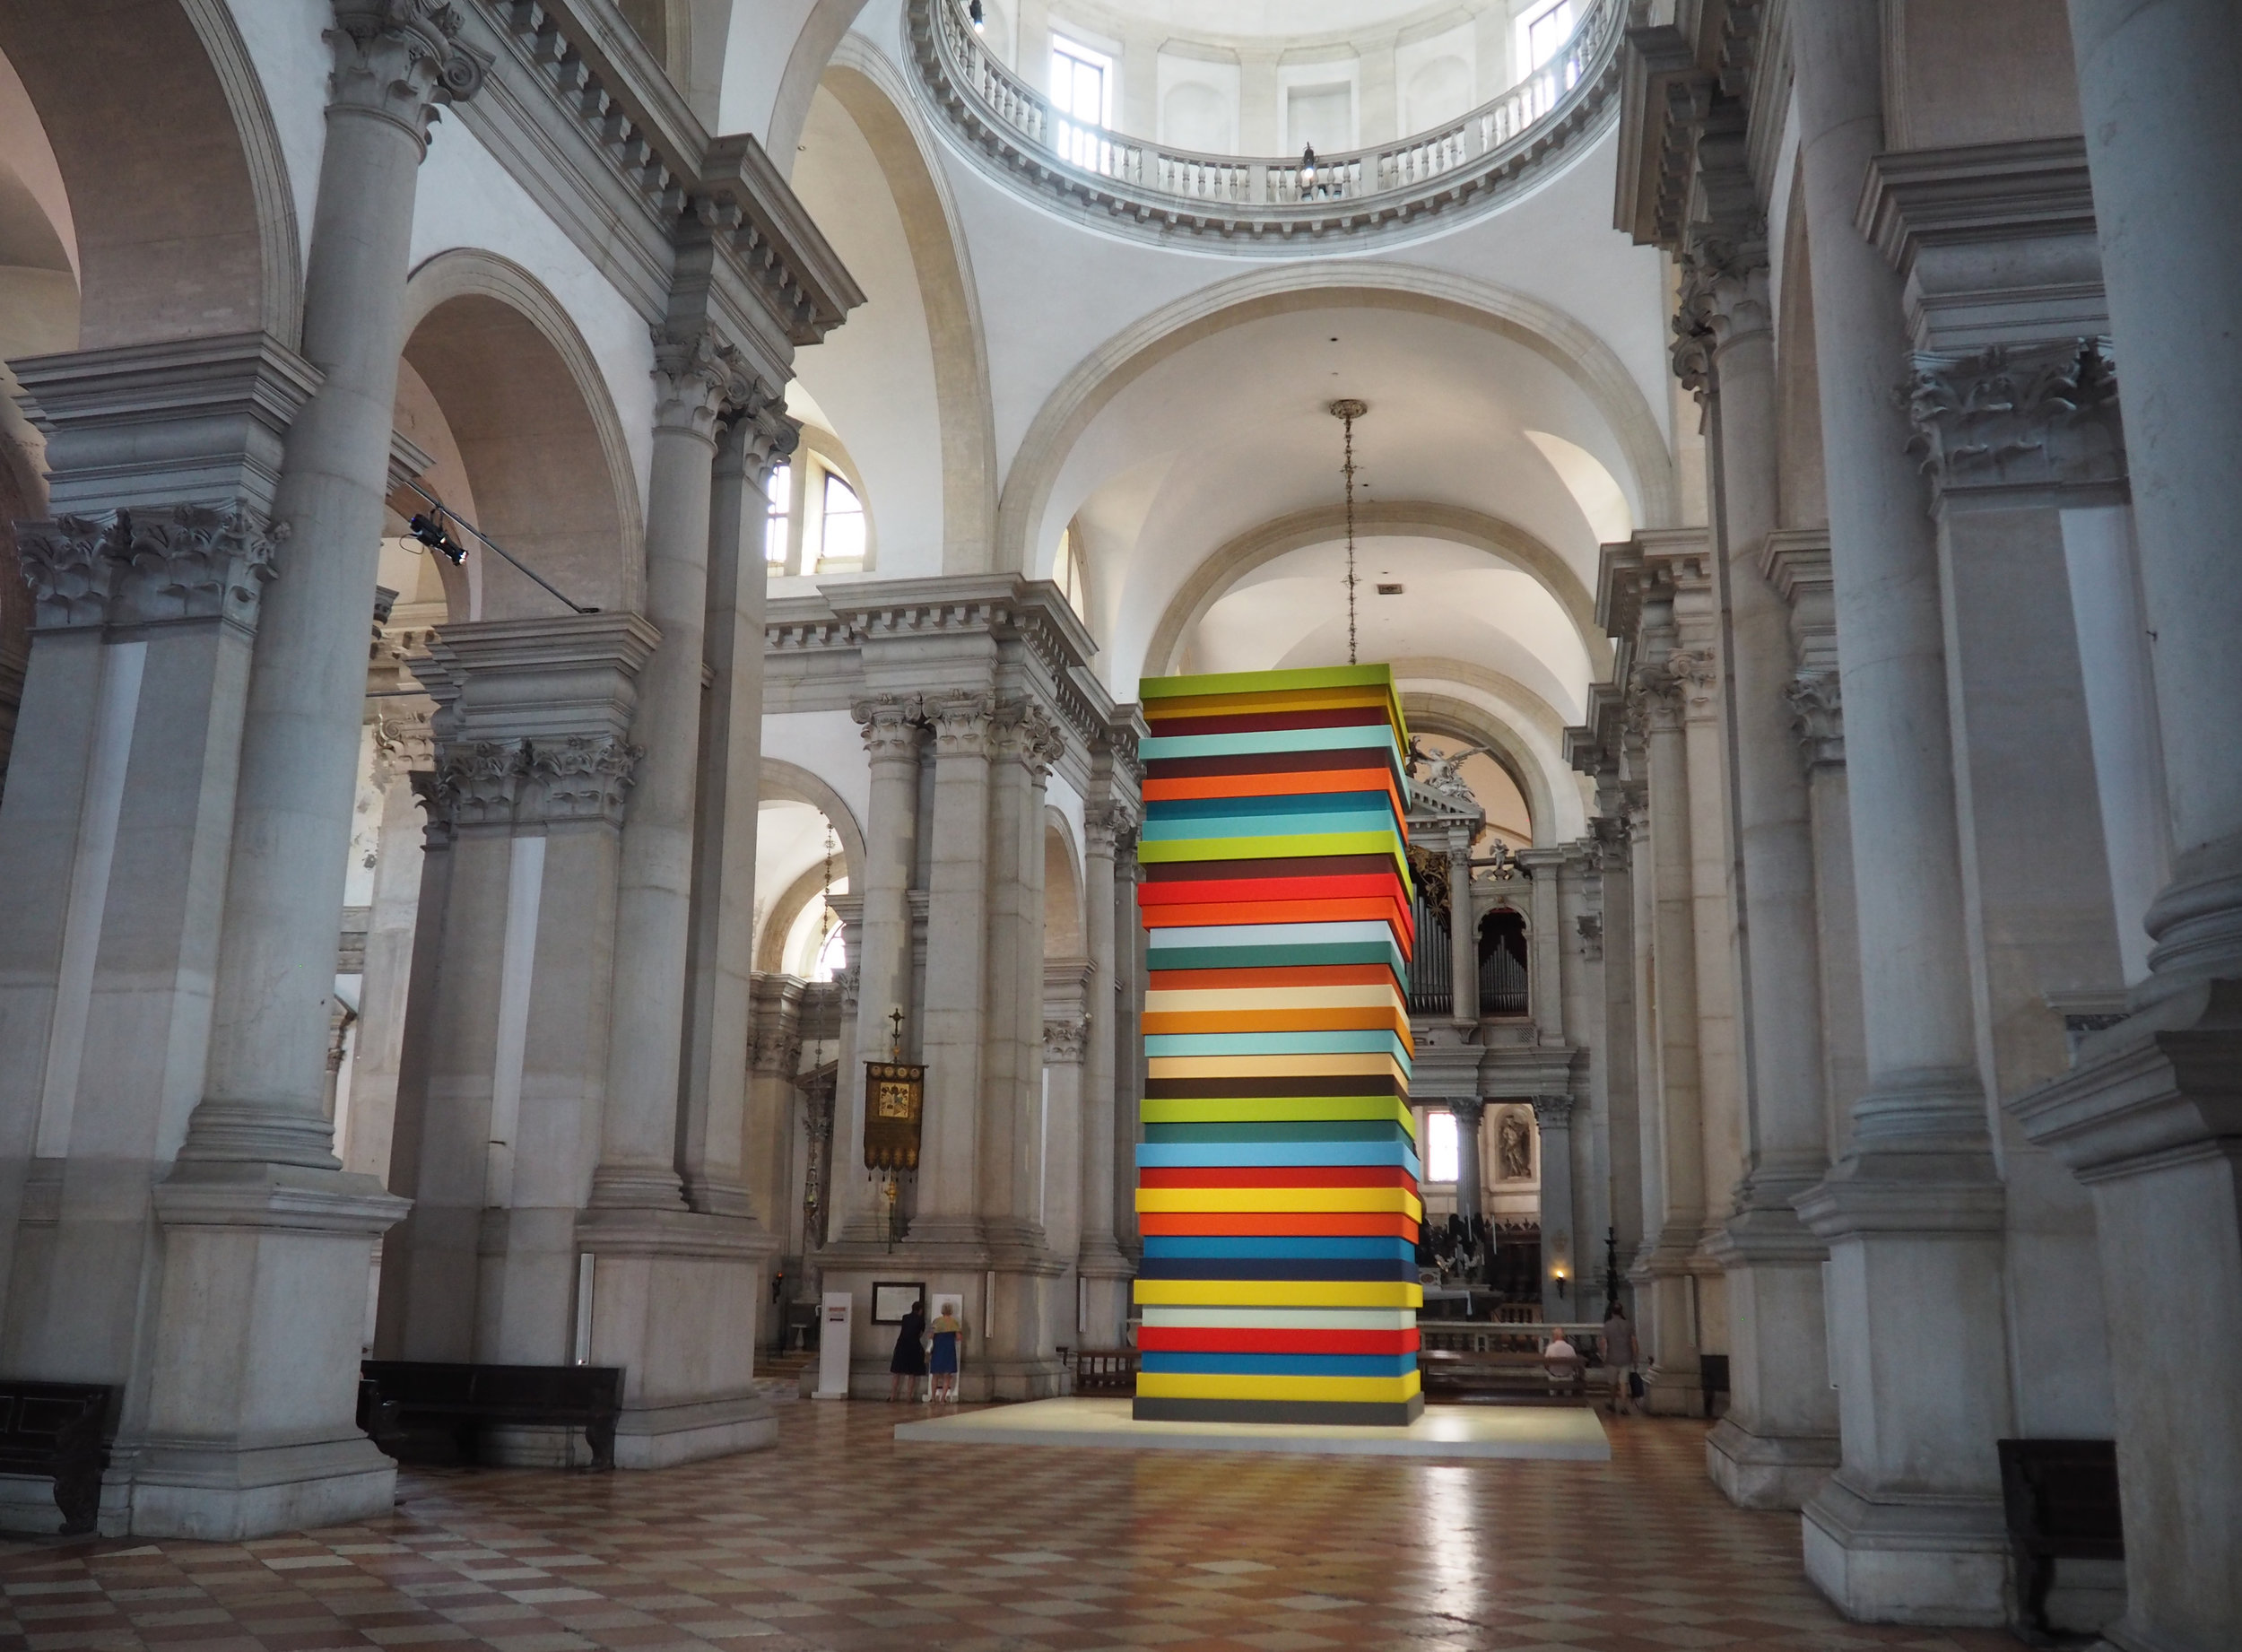 Interior and Dome, from our trip with a sculpture by Sean Scully